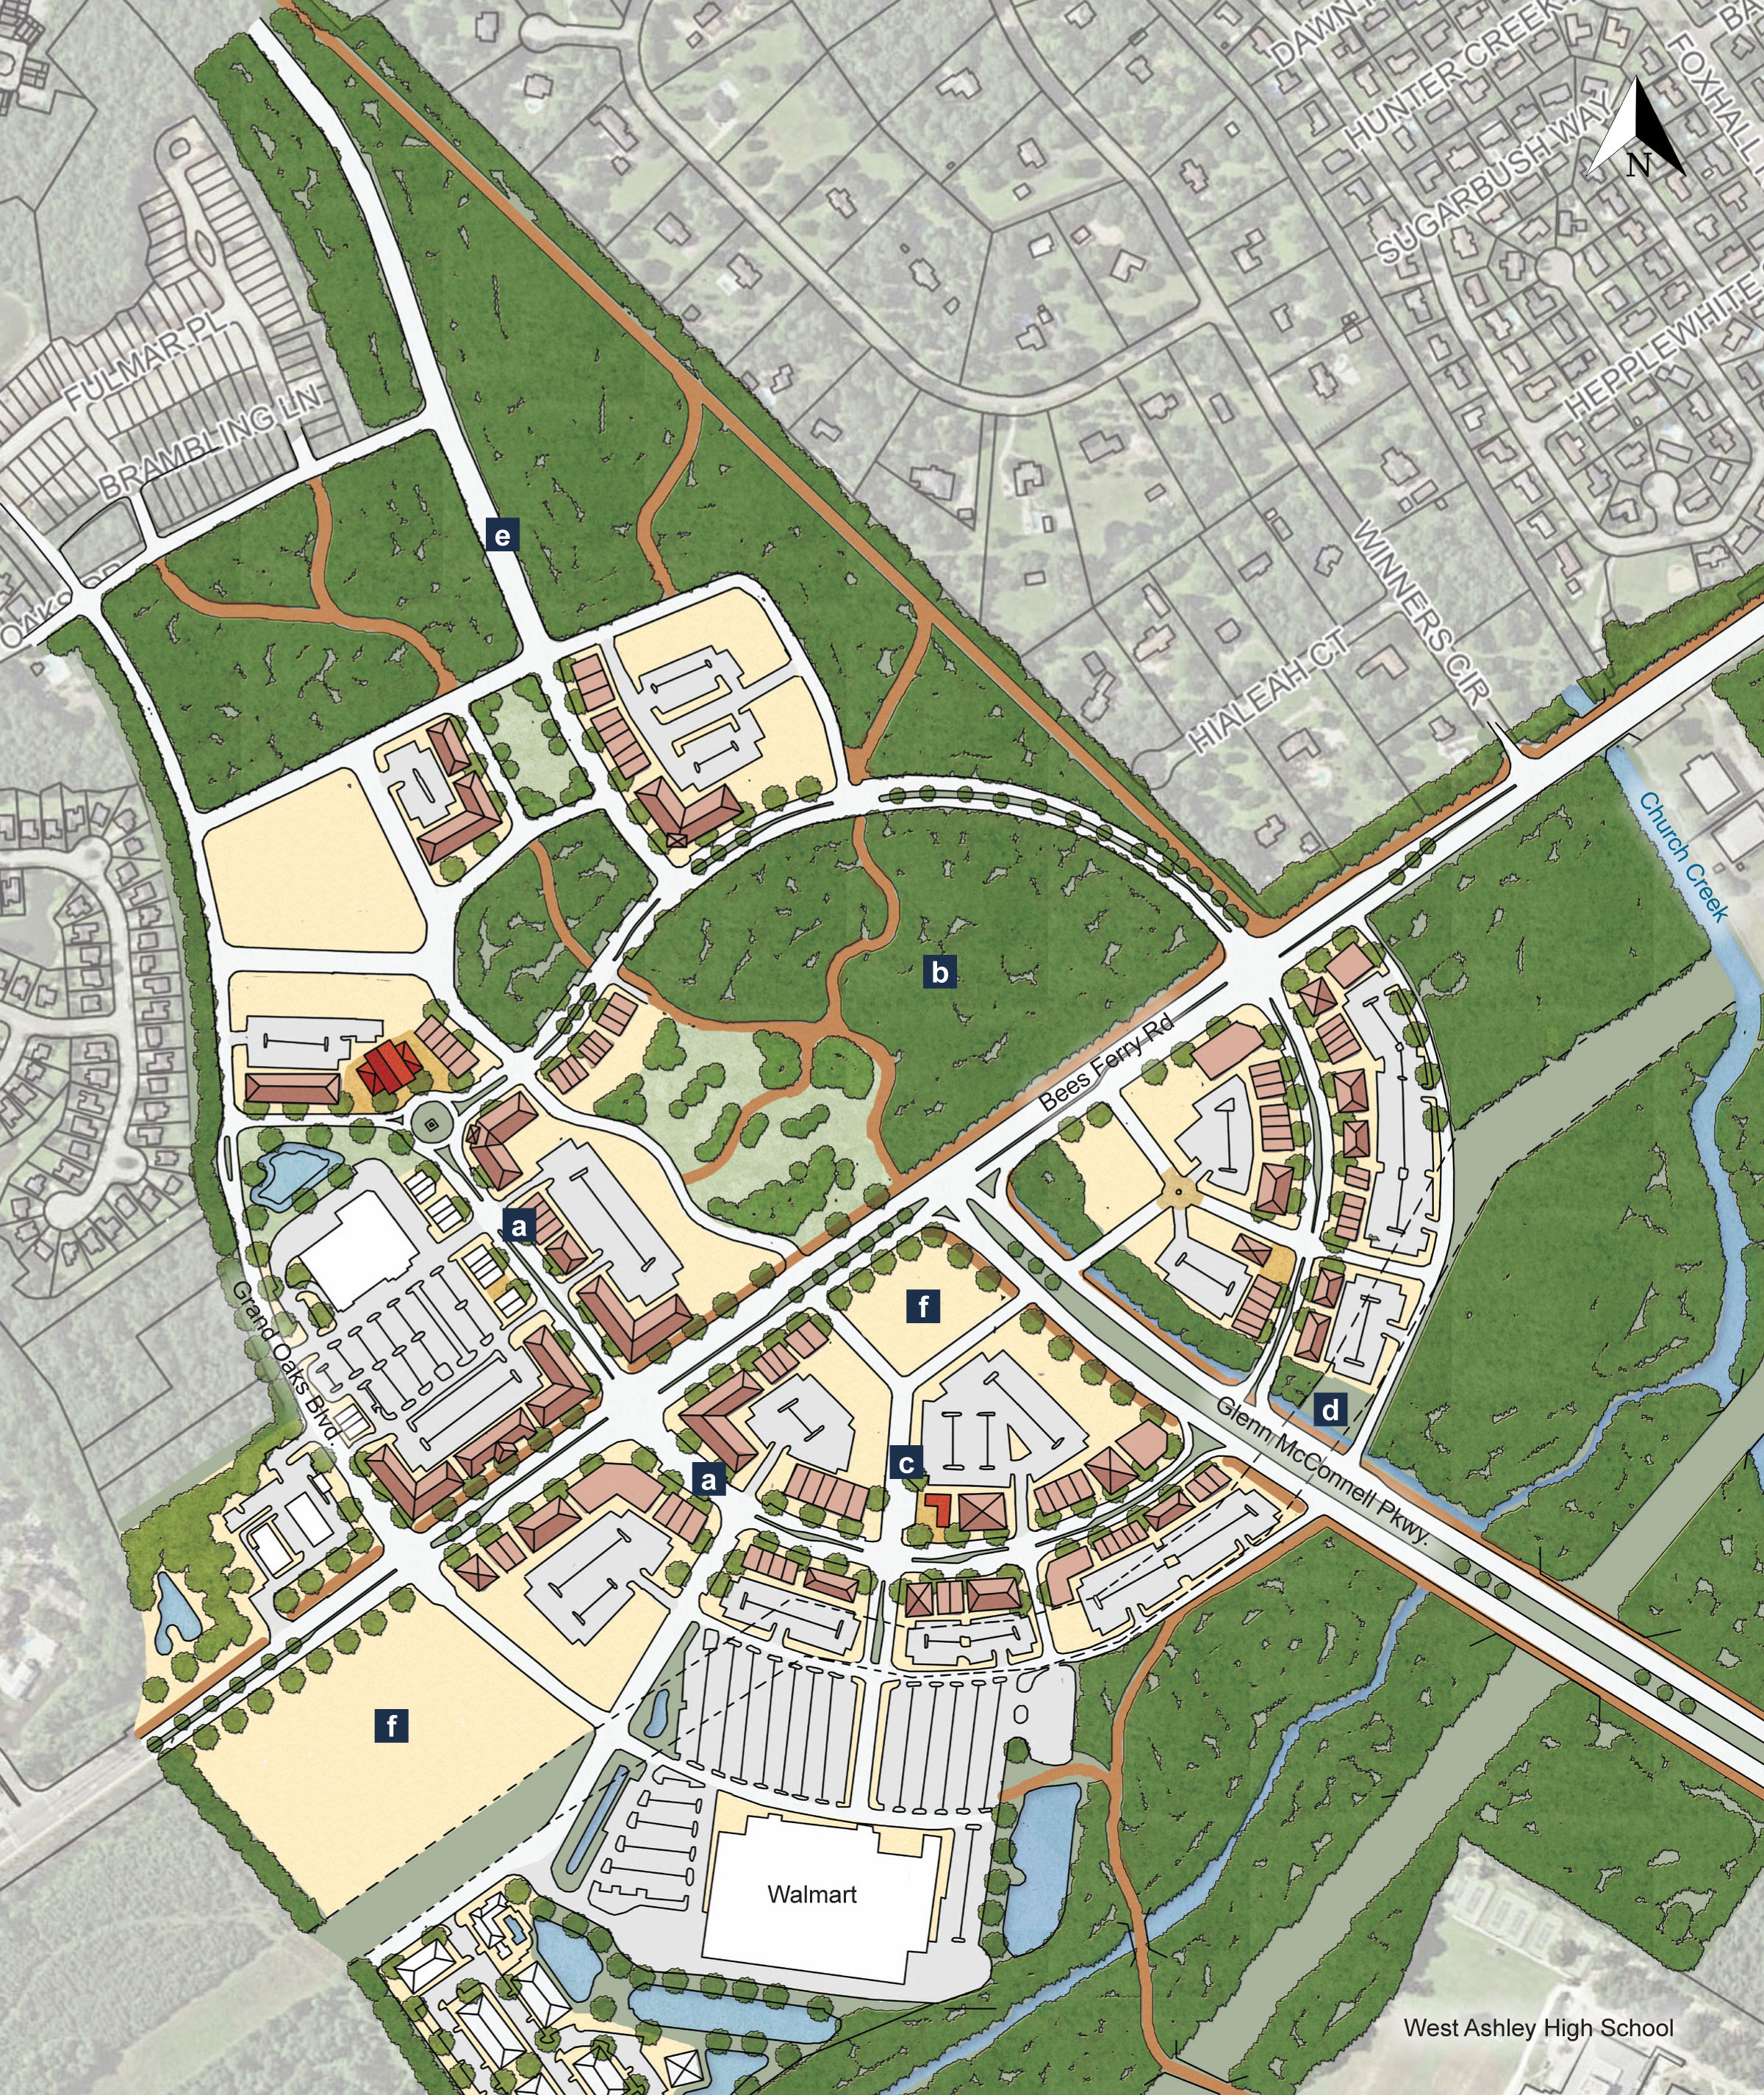 Pages from Plan West Ashley_2 Land Use-3.jpg